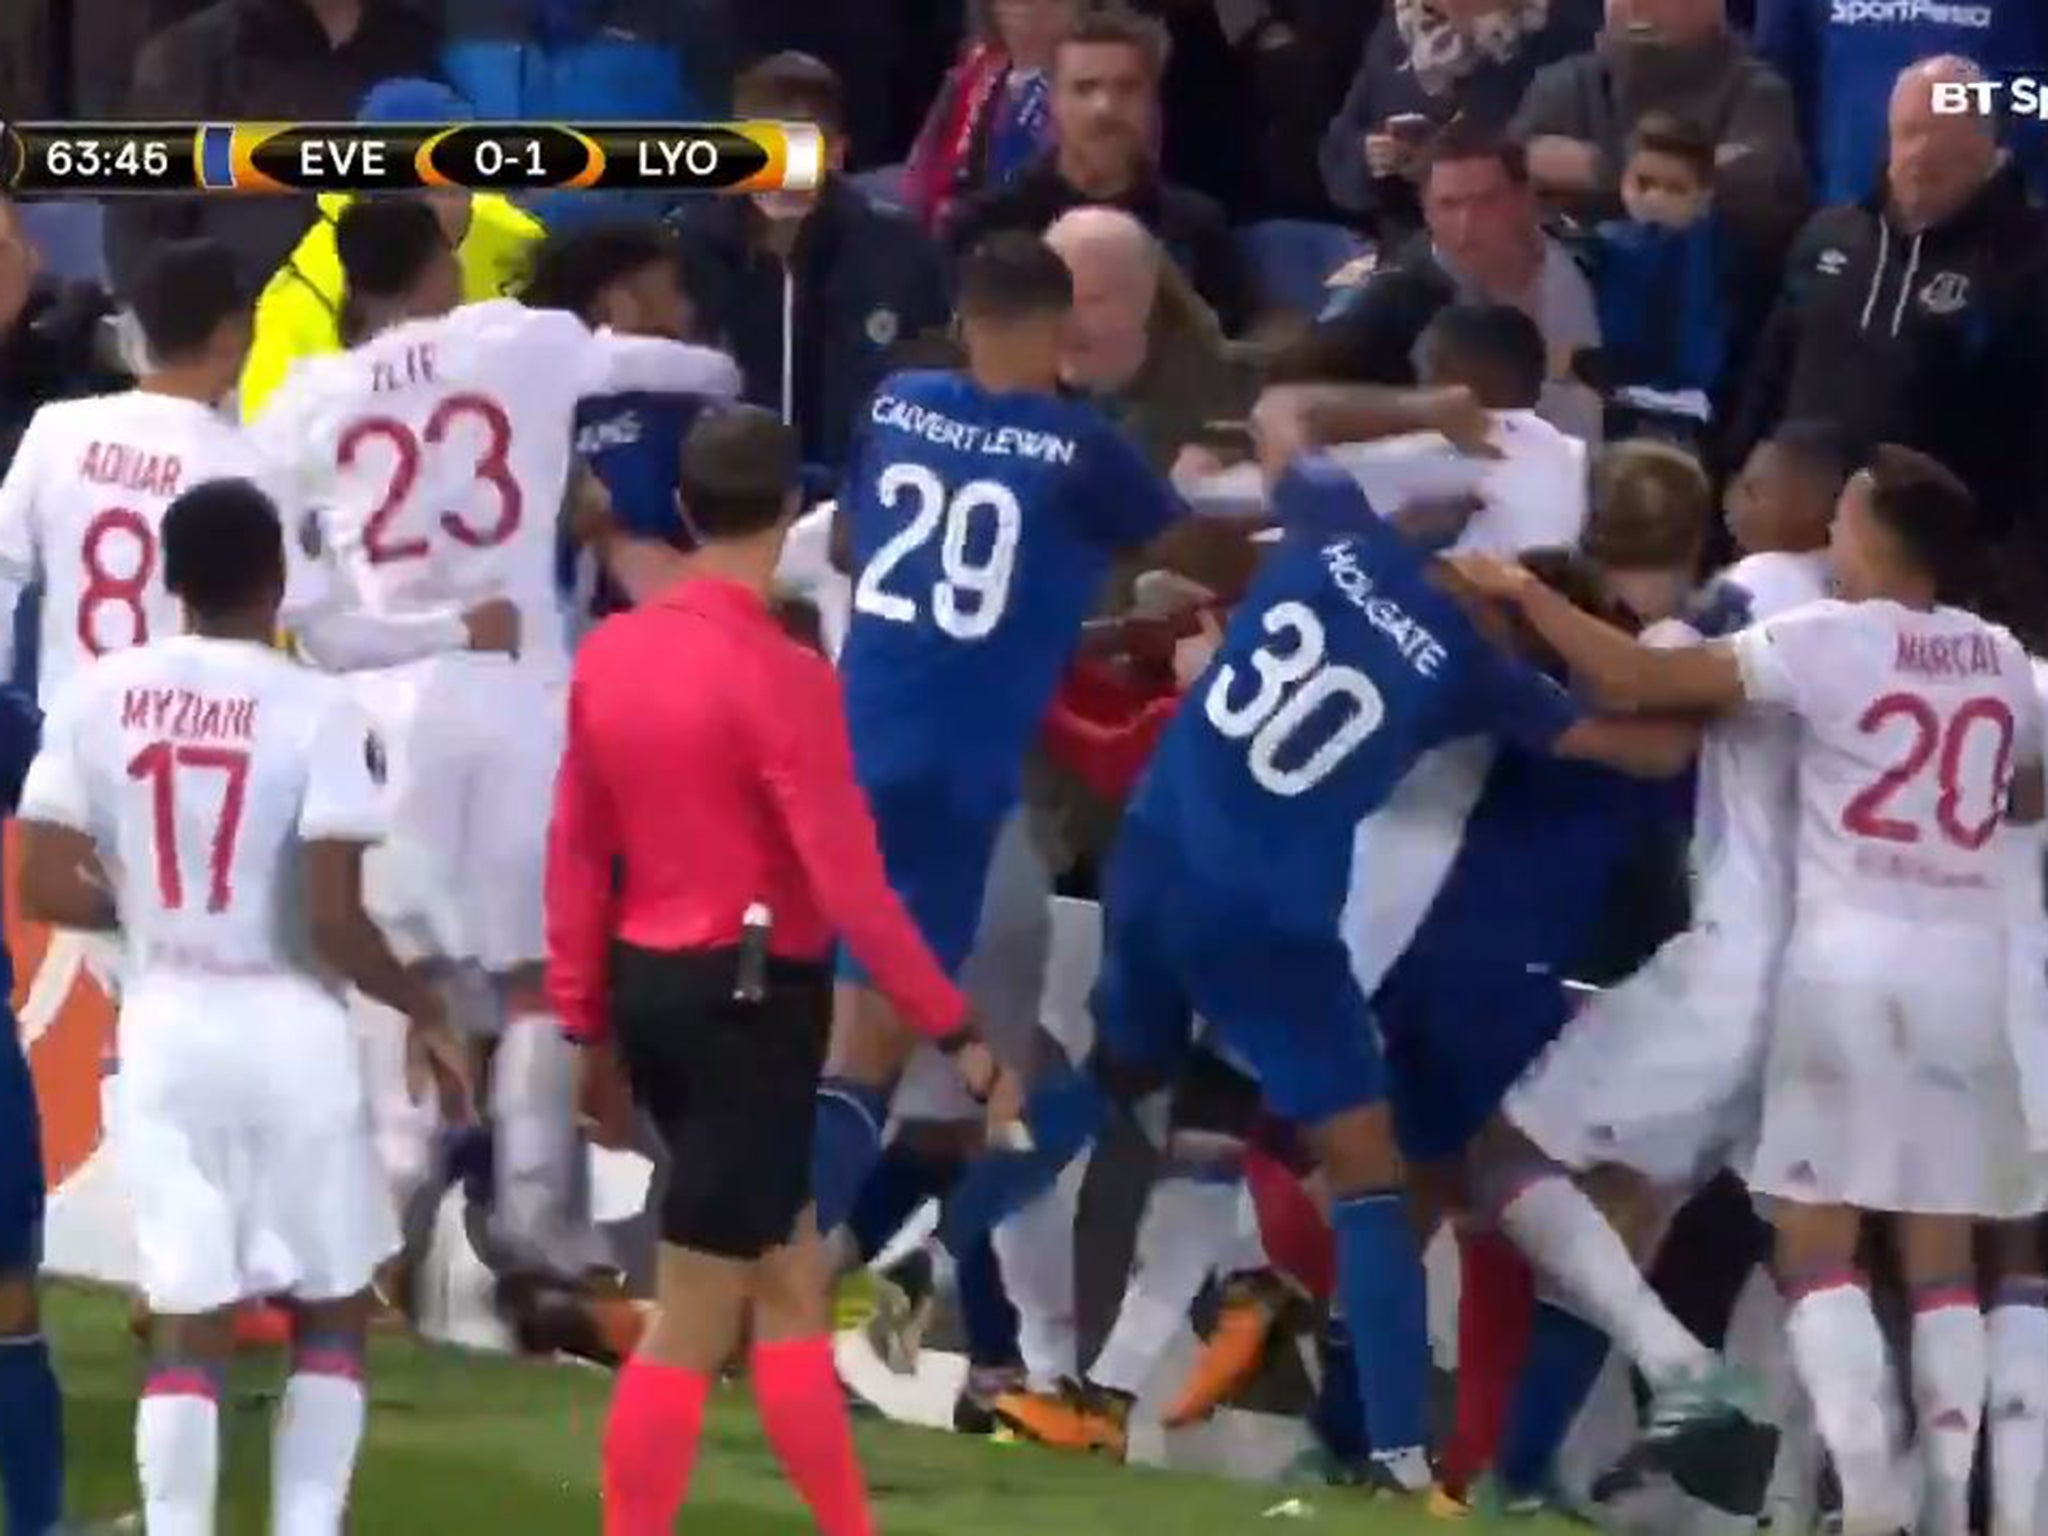 The man seen 'trying to fight Lyon players' during Everton match has been identified